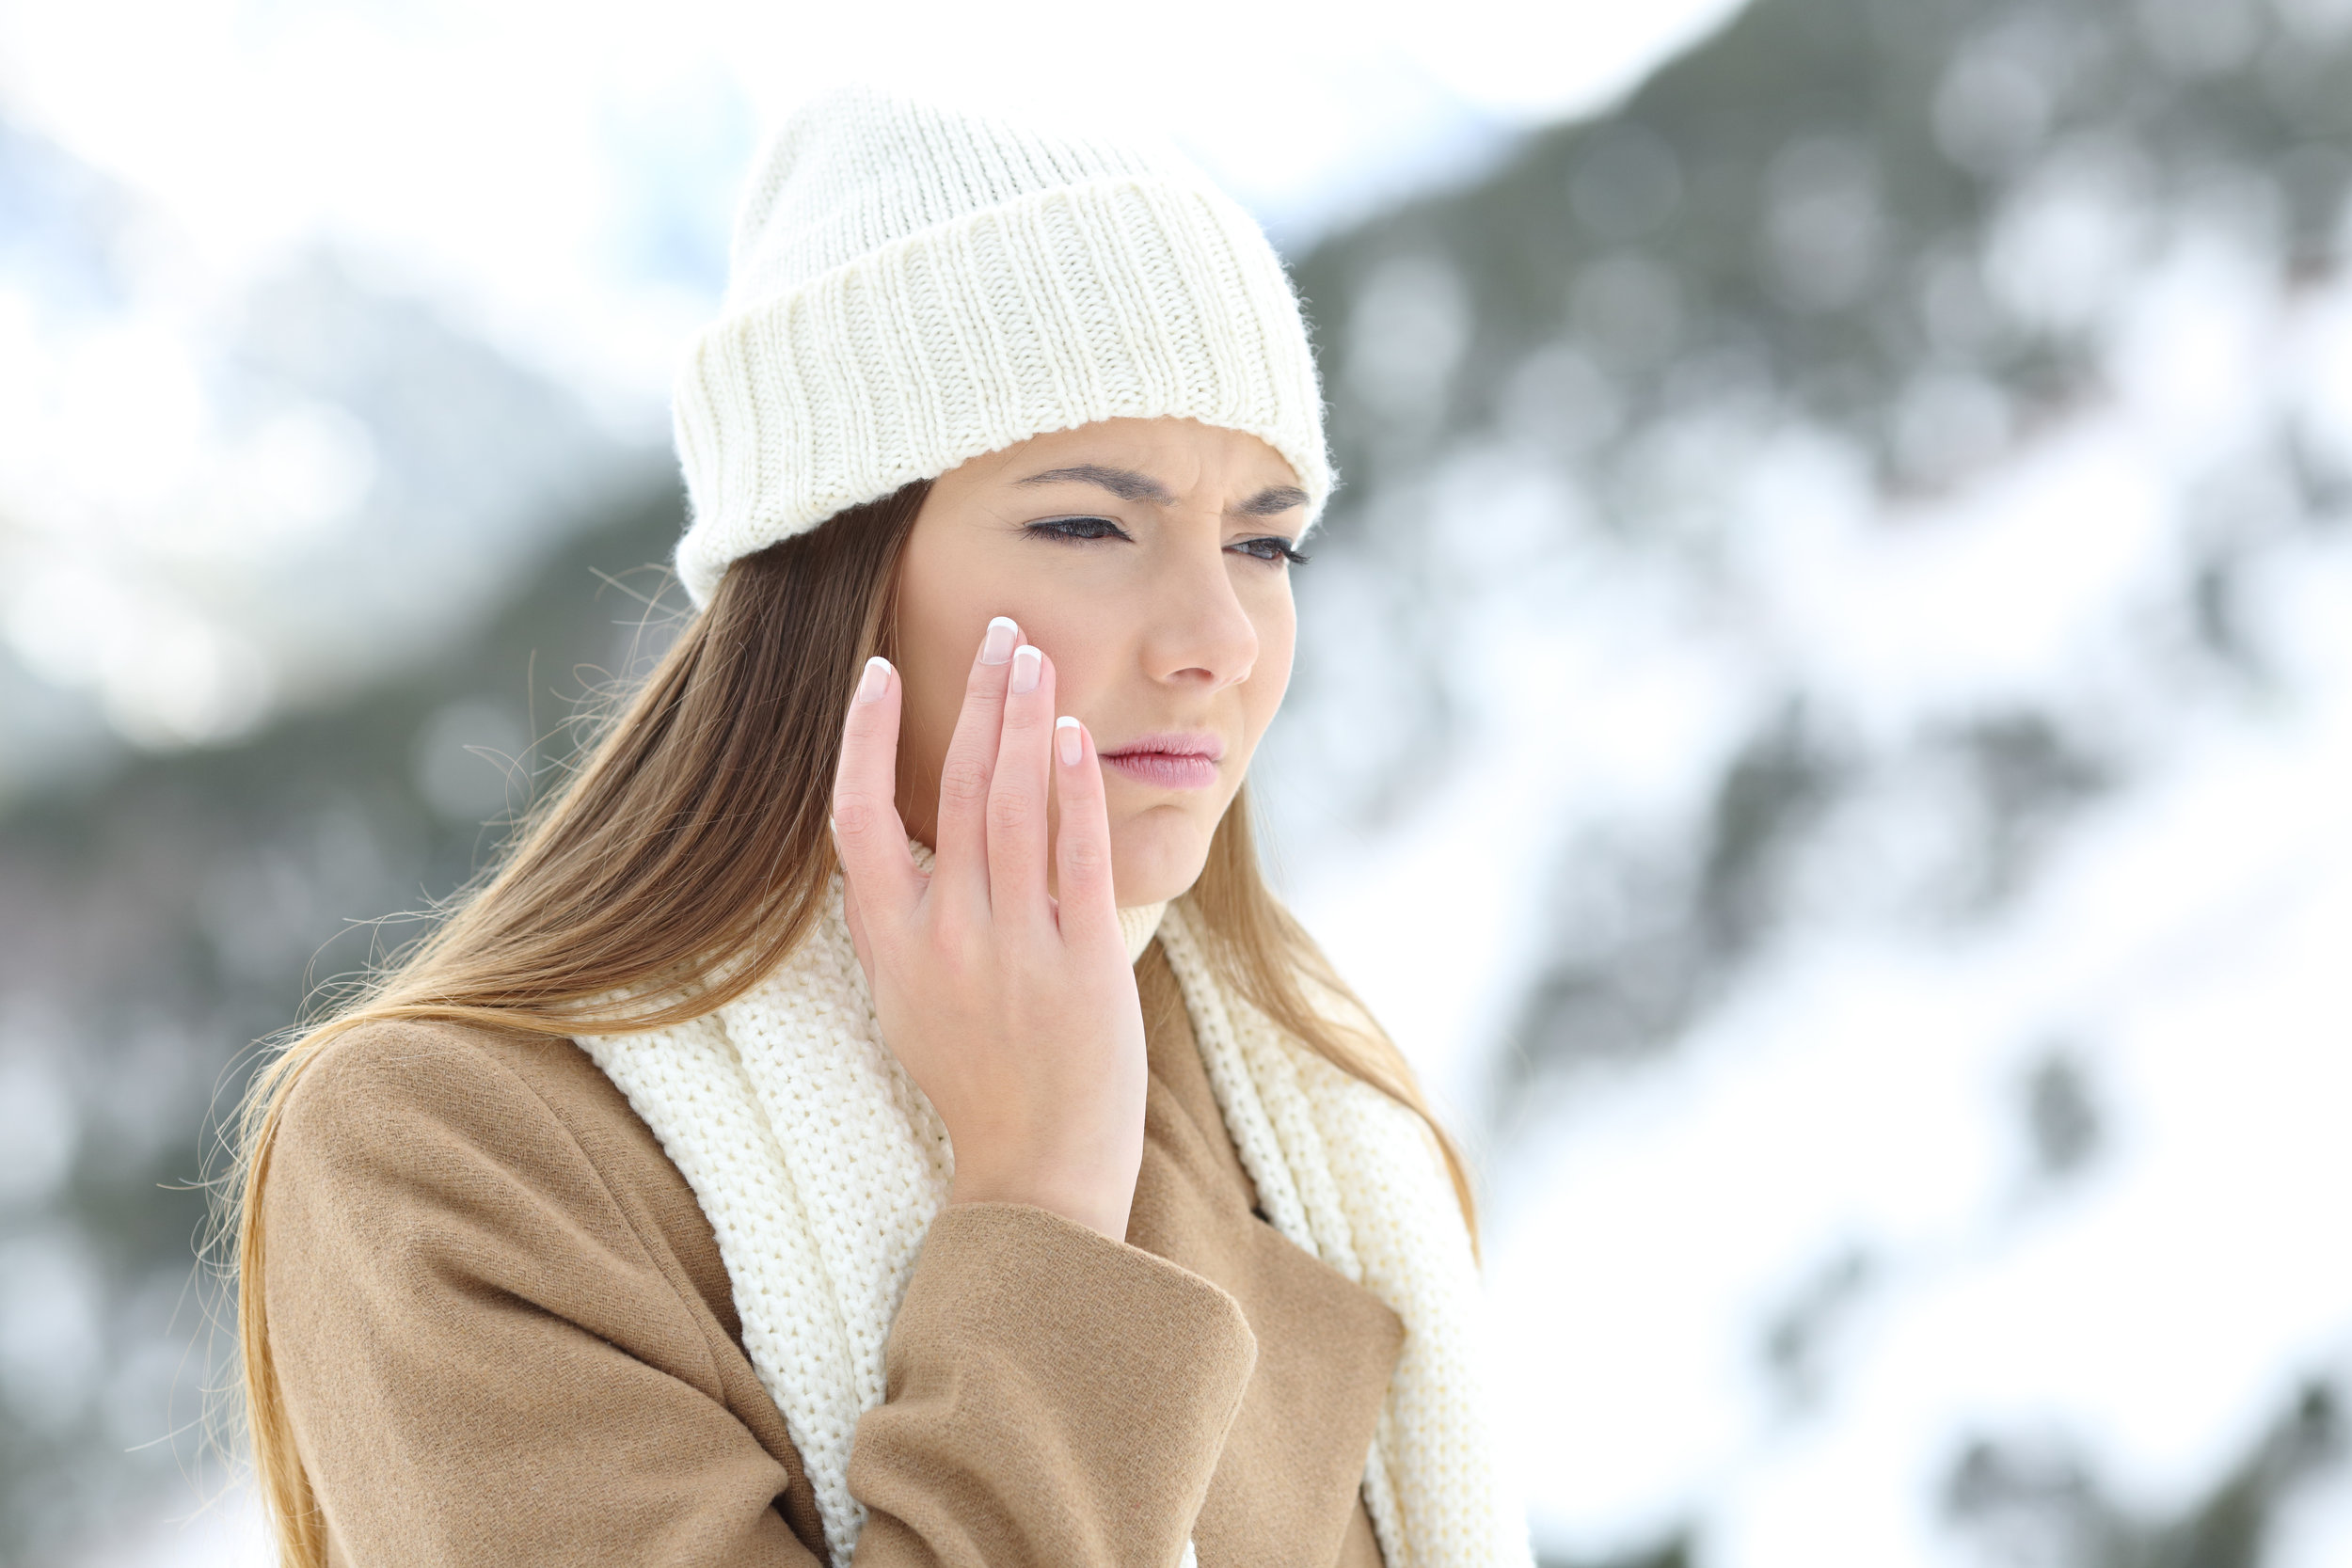 Is your dry skin bothering you? - Your dry skin could be the result of poor indoor air quality and not bad skin!